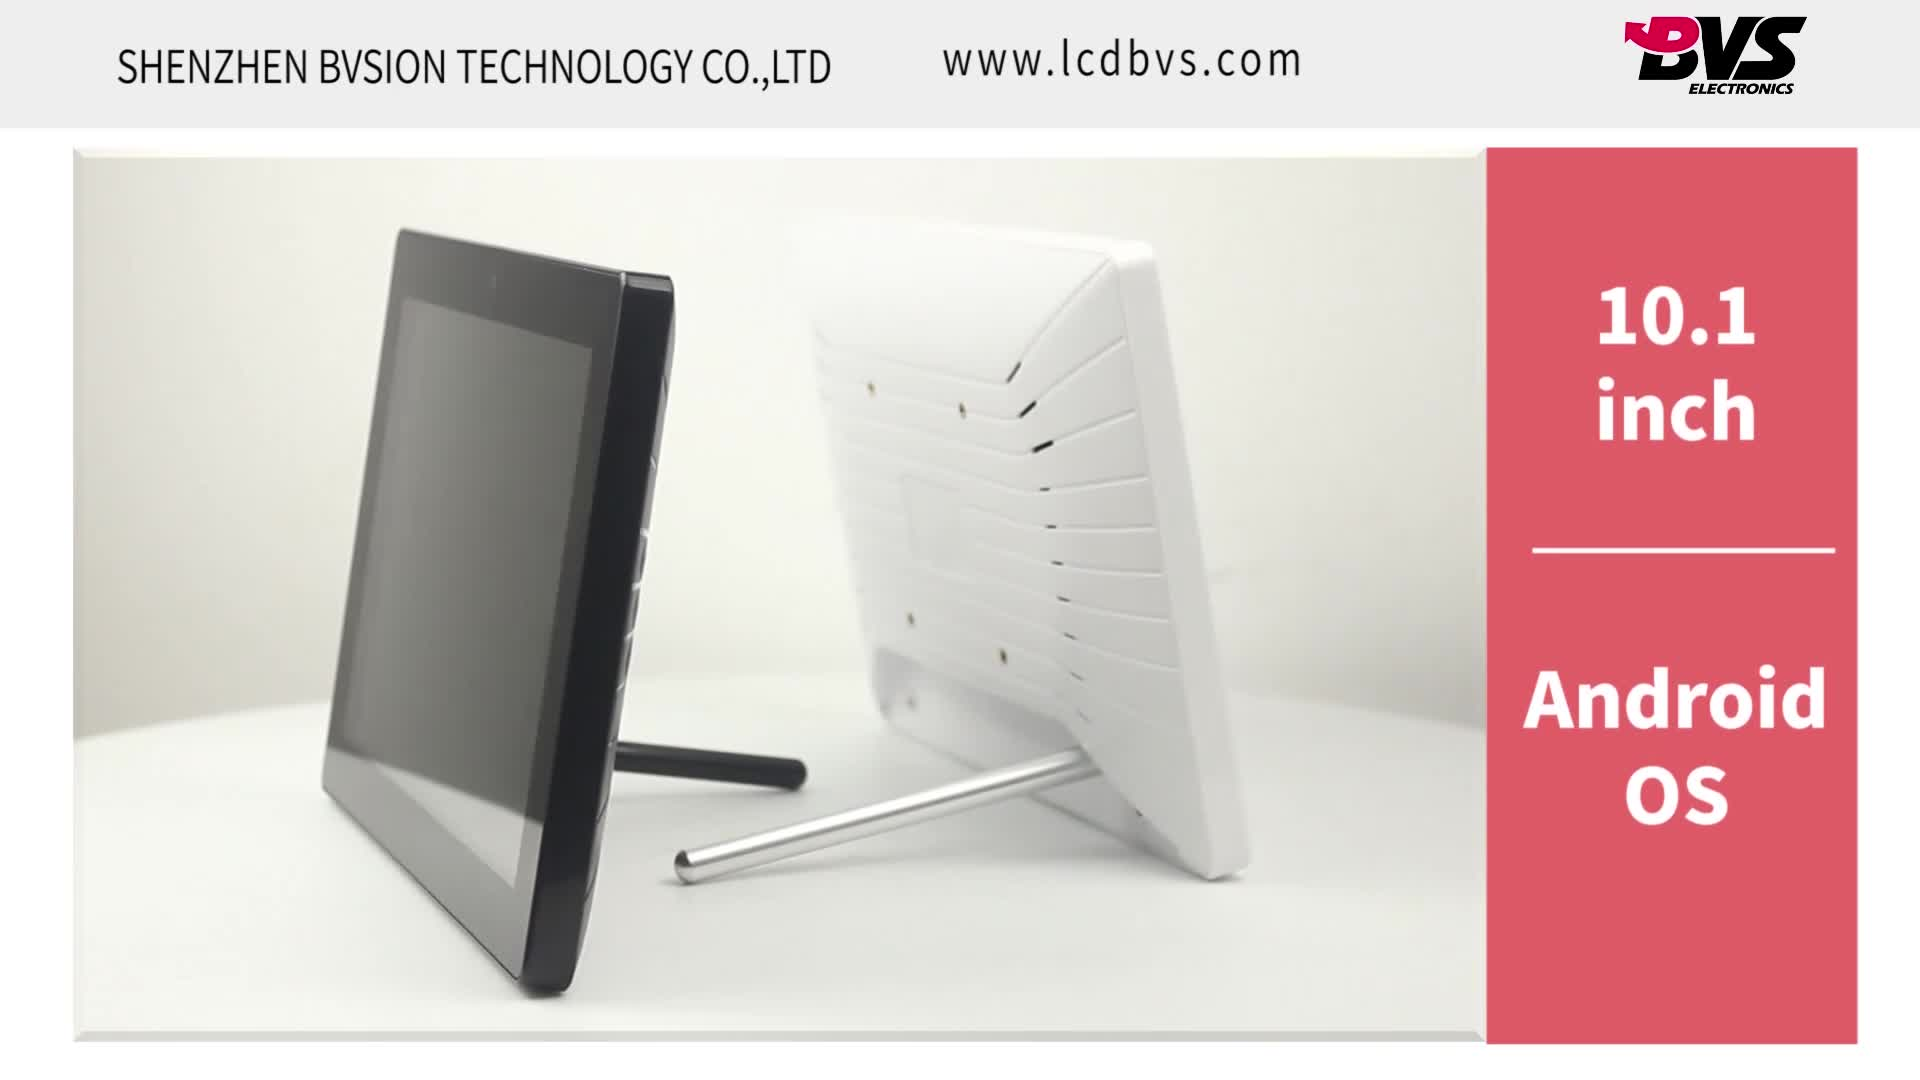 Oem Tablet 10 Inch Android Tablet Pc Smart Home Muur Mount Android Poe Tablet Met RJ45 Ethernet